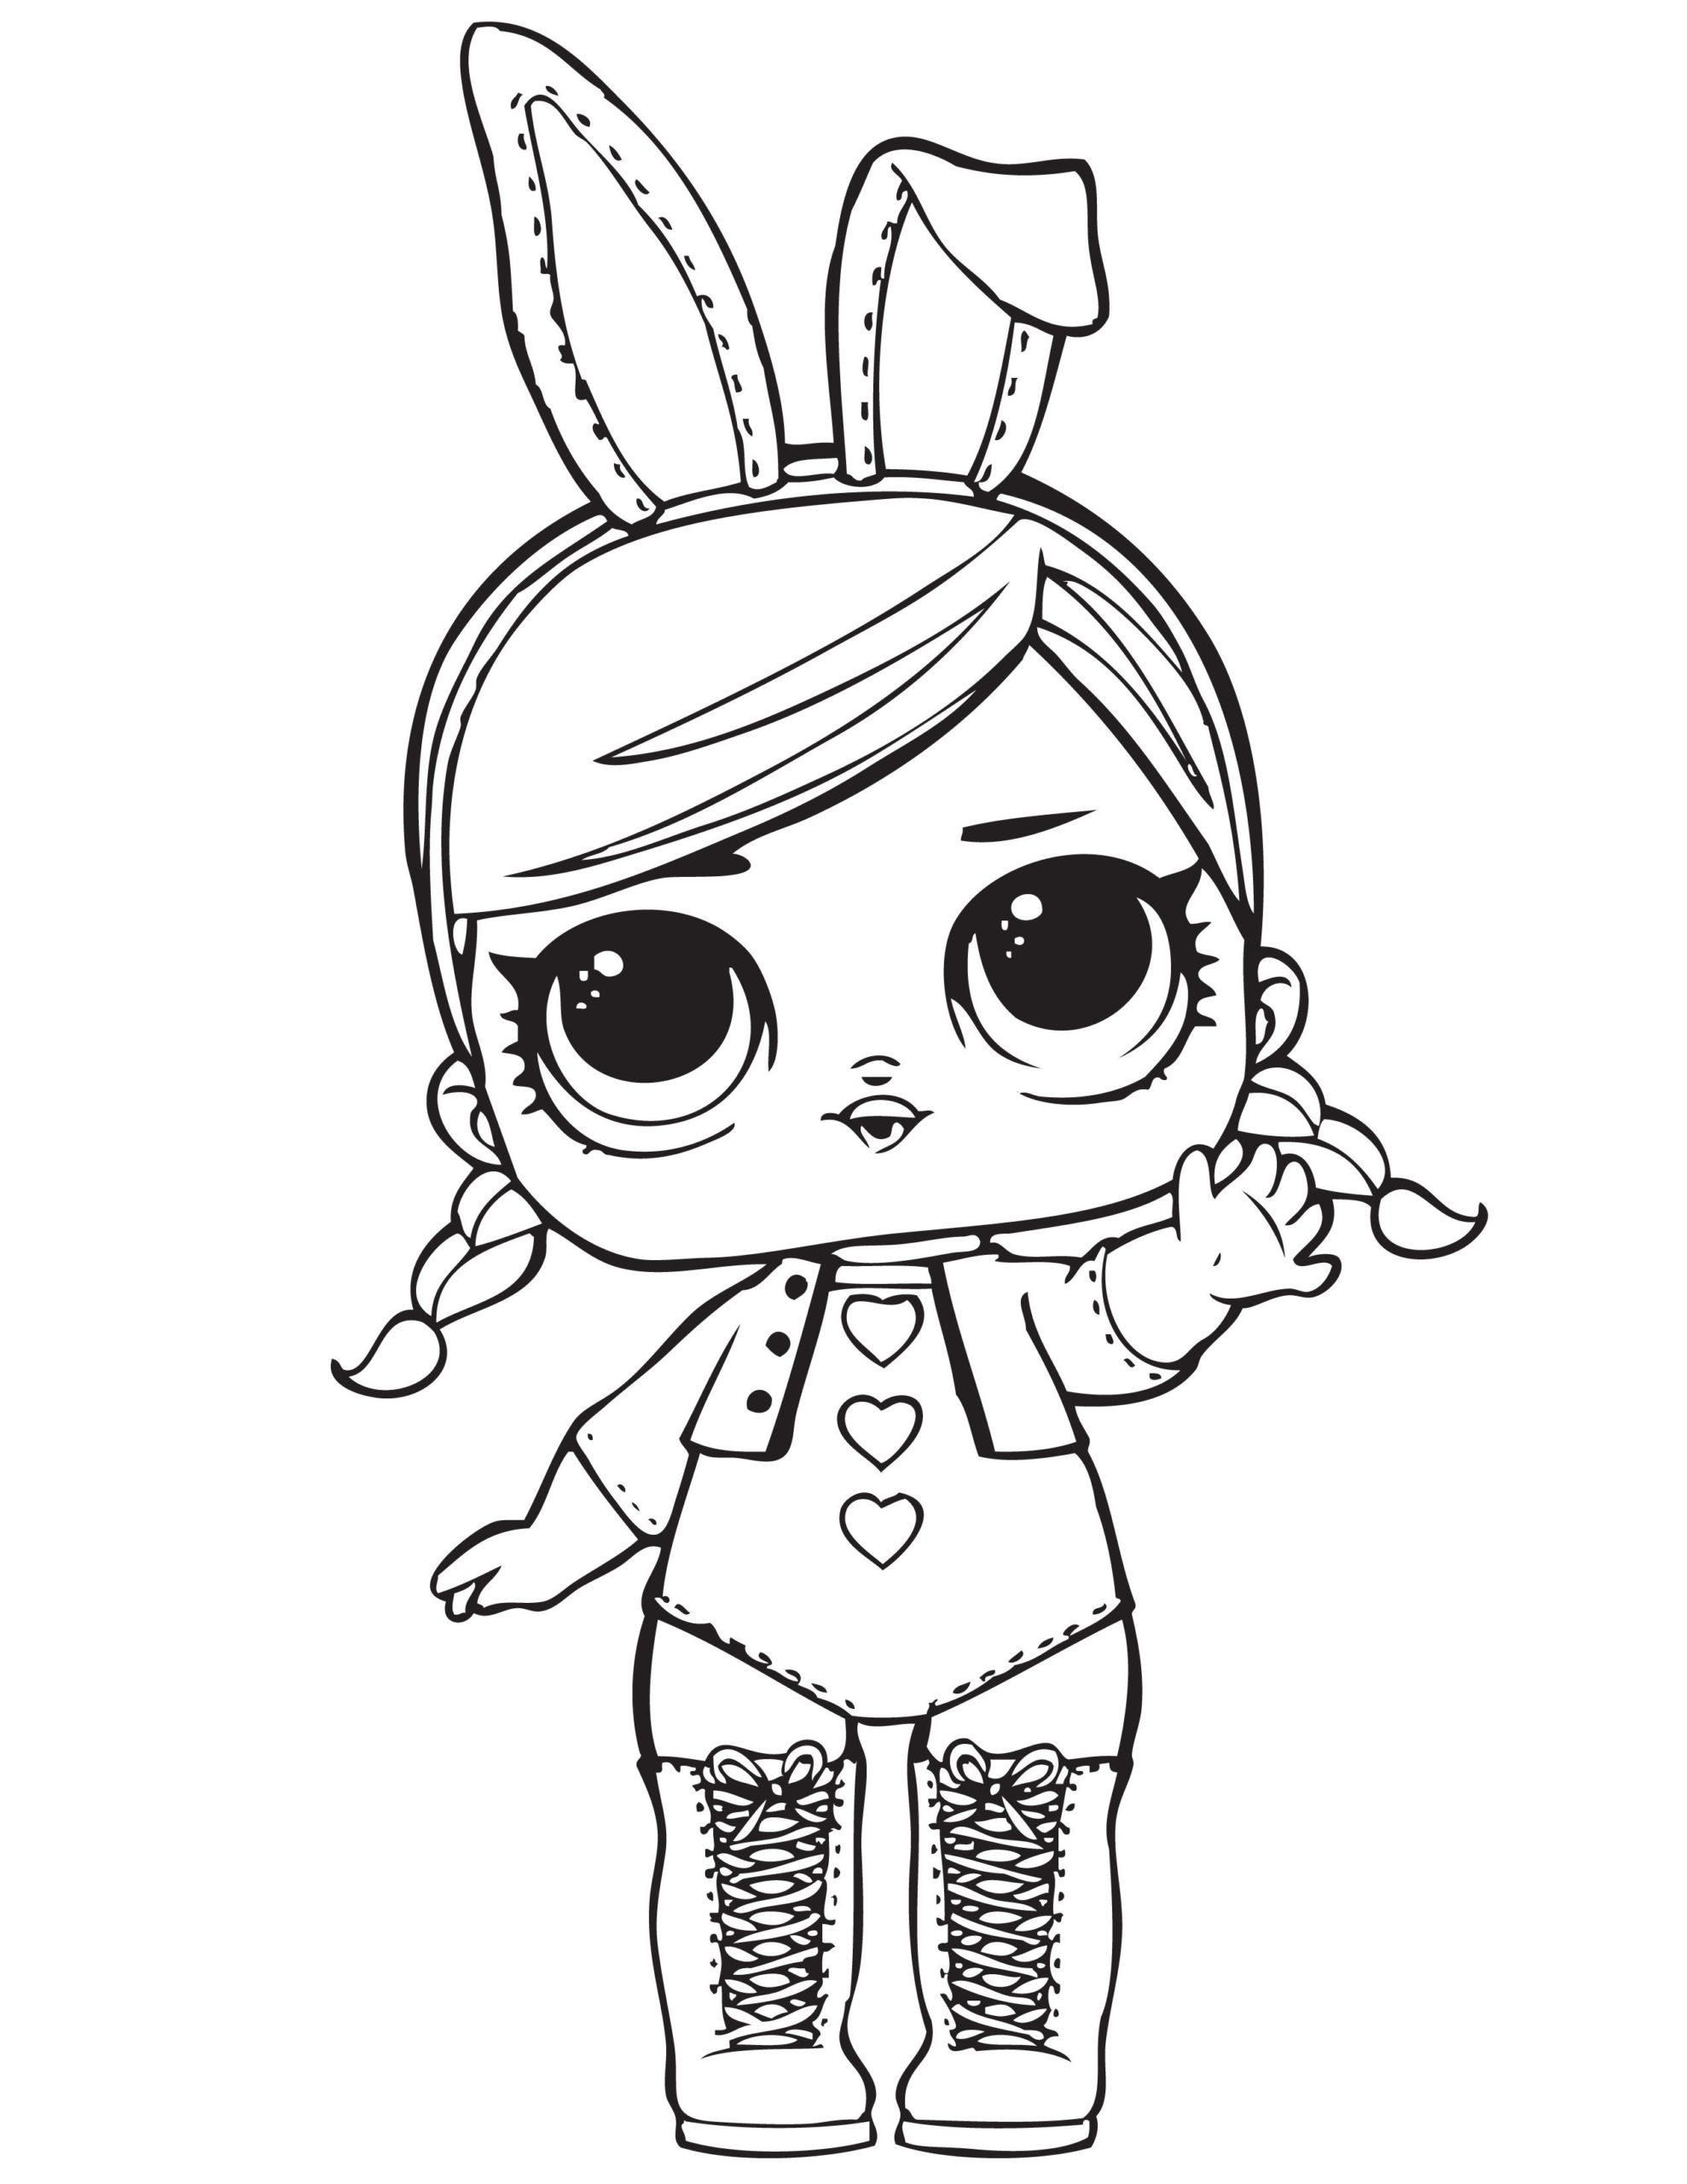 16 Coloring Pages Lol Doll Animal Coloring Pages Unicorn Coloring Pages Cartoon Coloring Pages